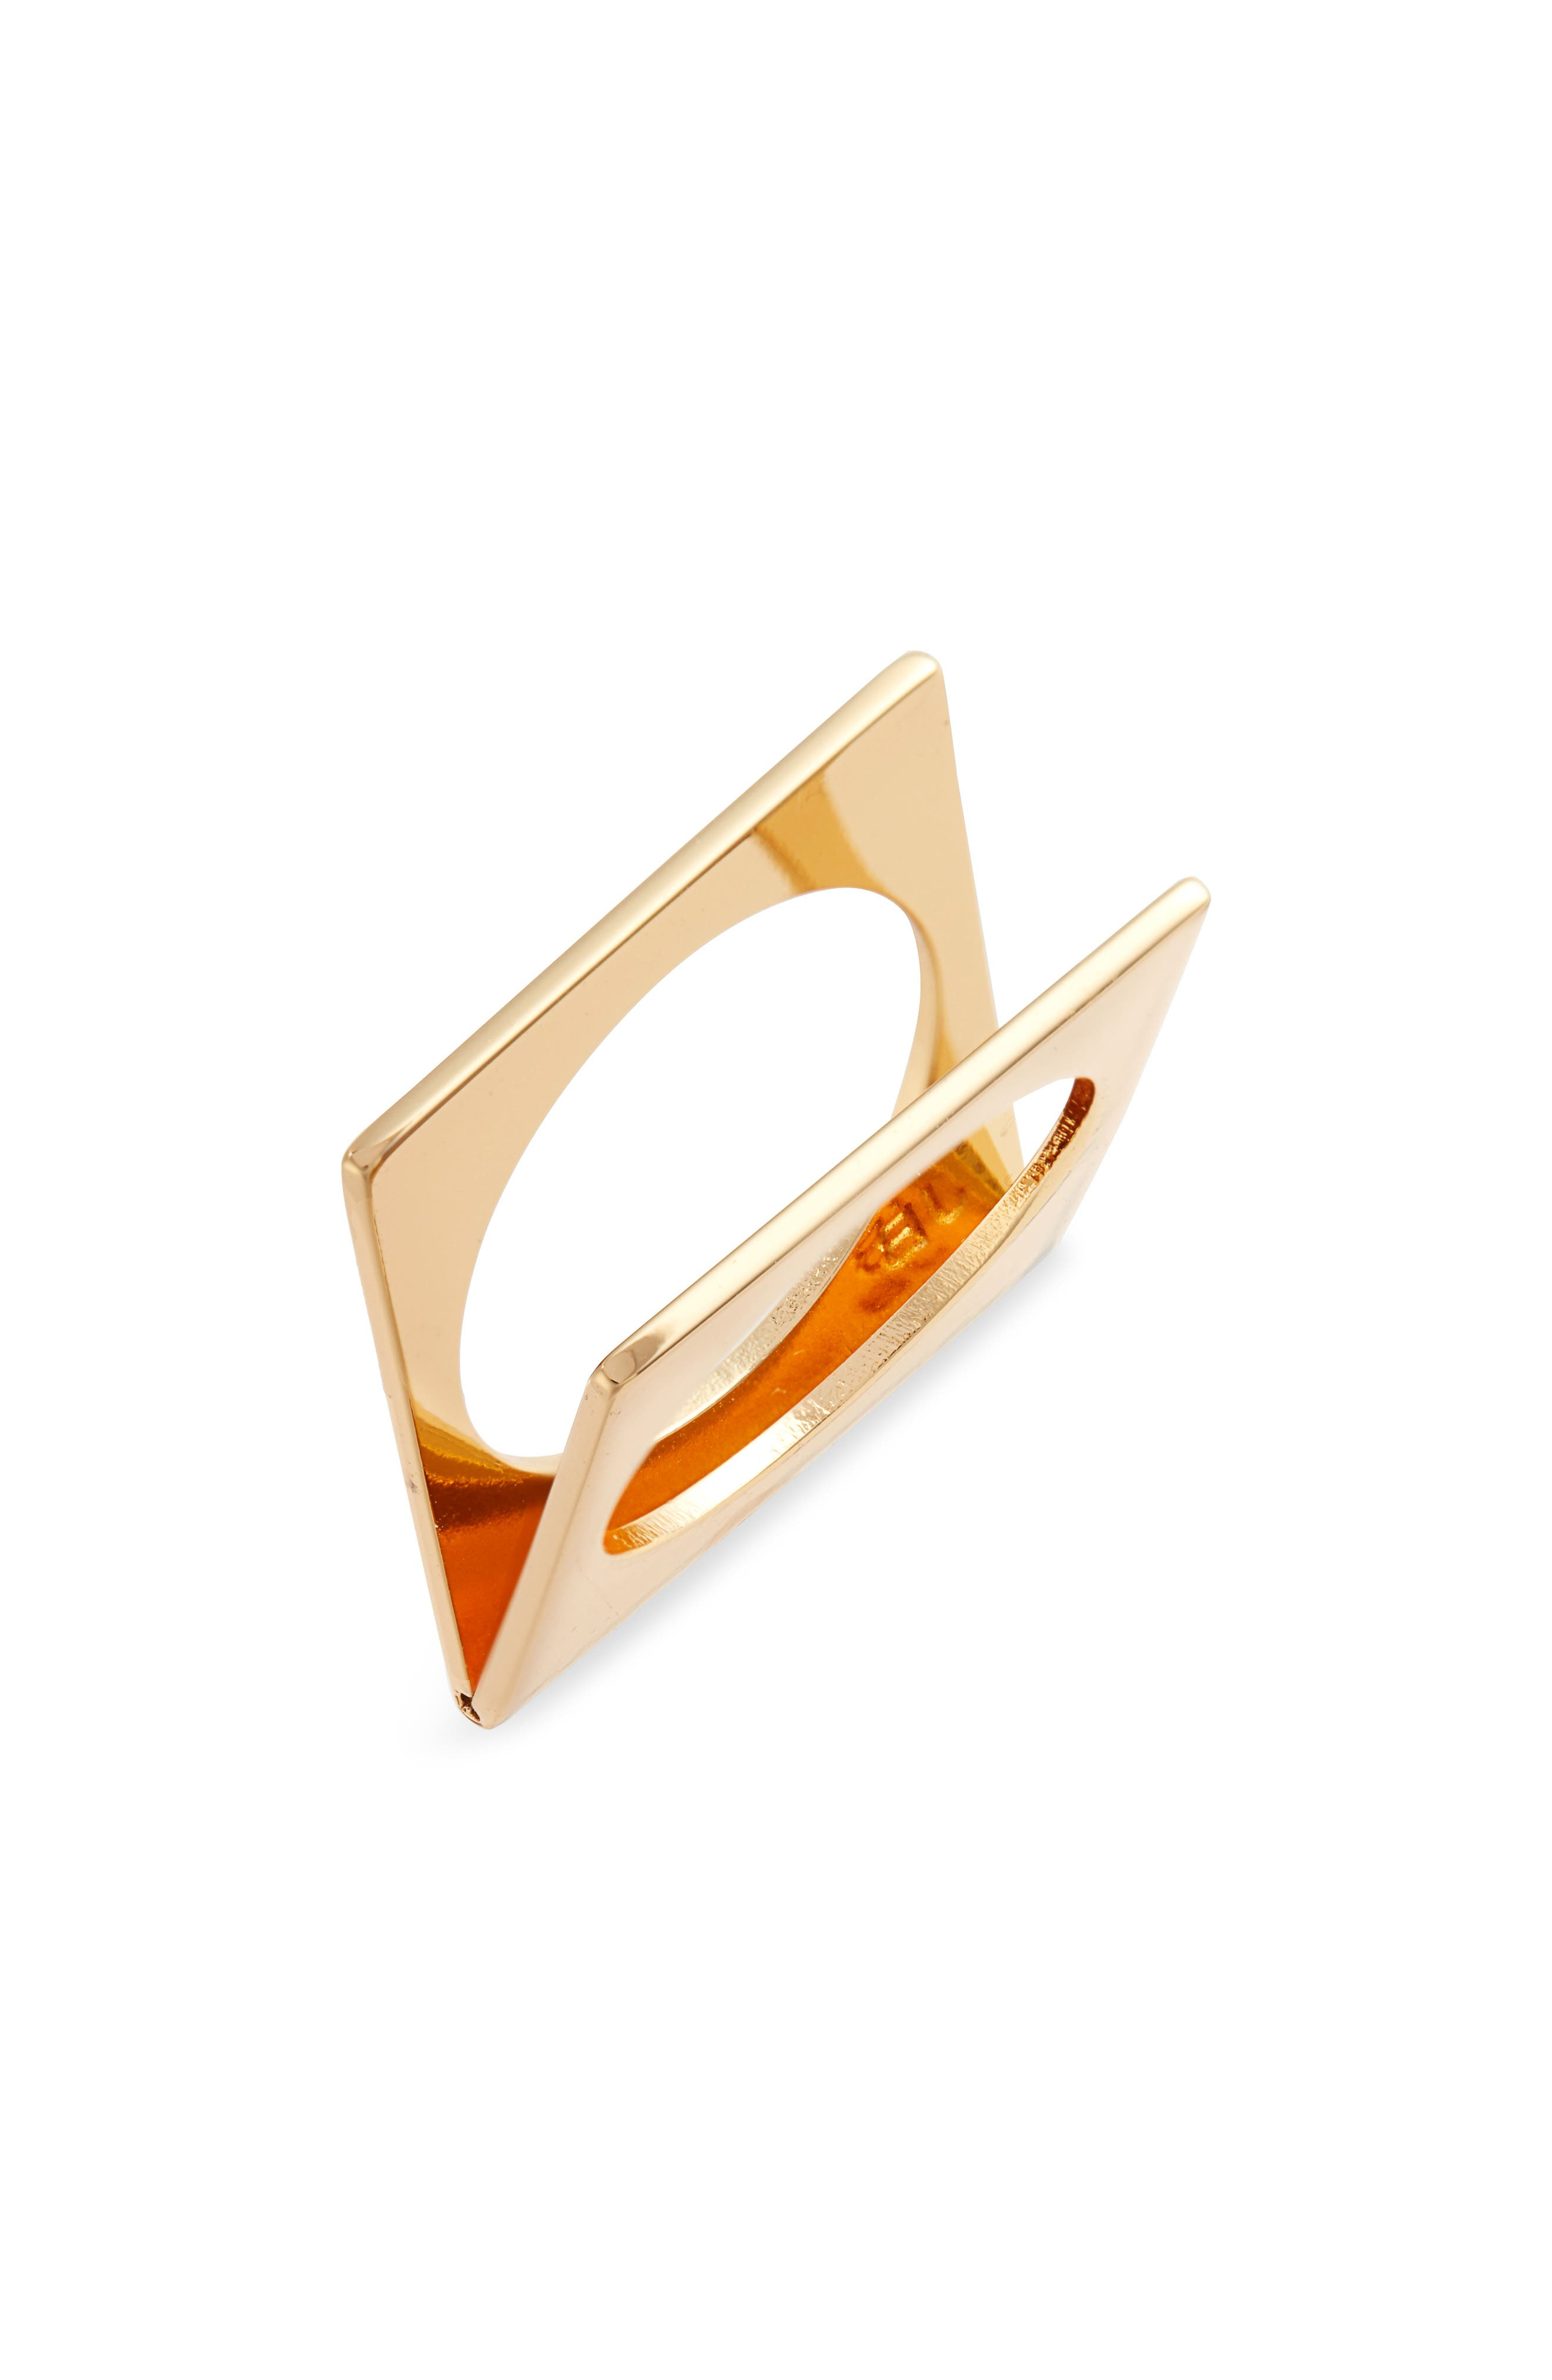 JENNY BIRD For The Love Square Ring in Gold